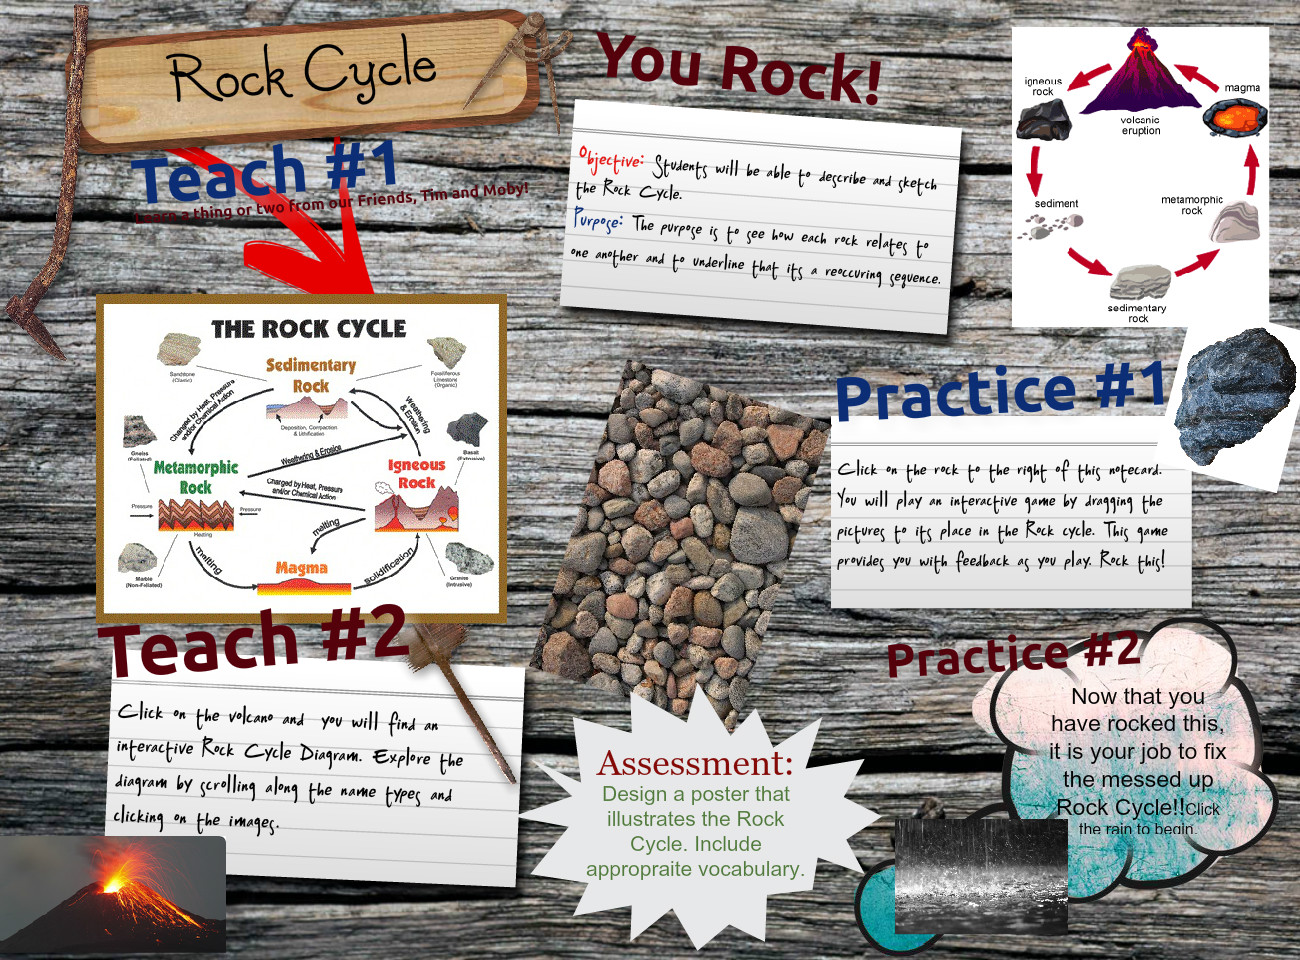 [2015] Mariah Monroe (Thursday 302 02): Rock Cycle